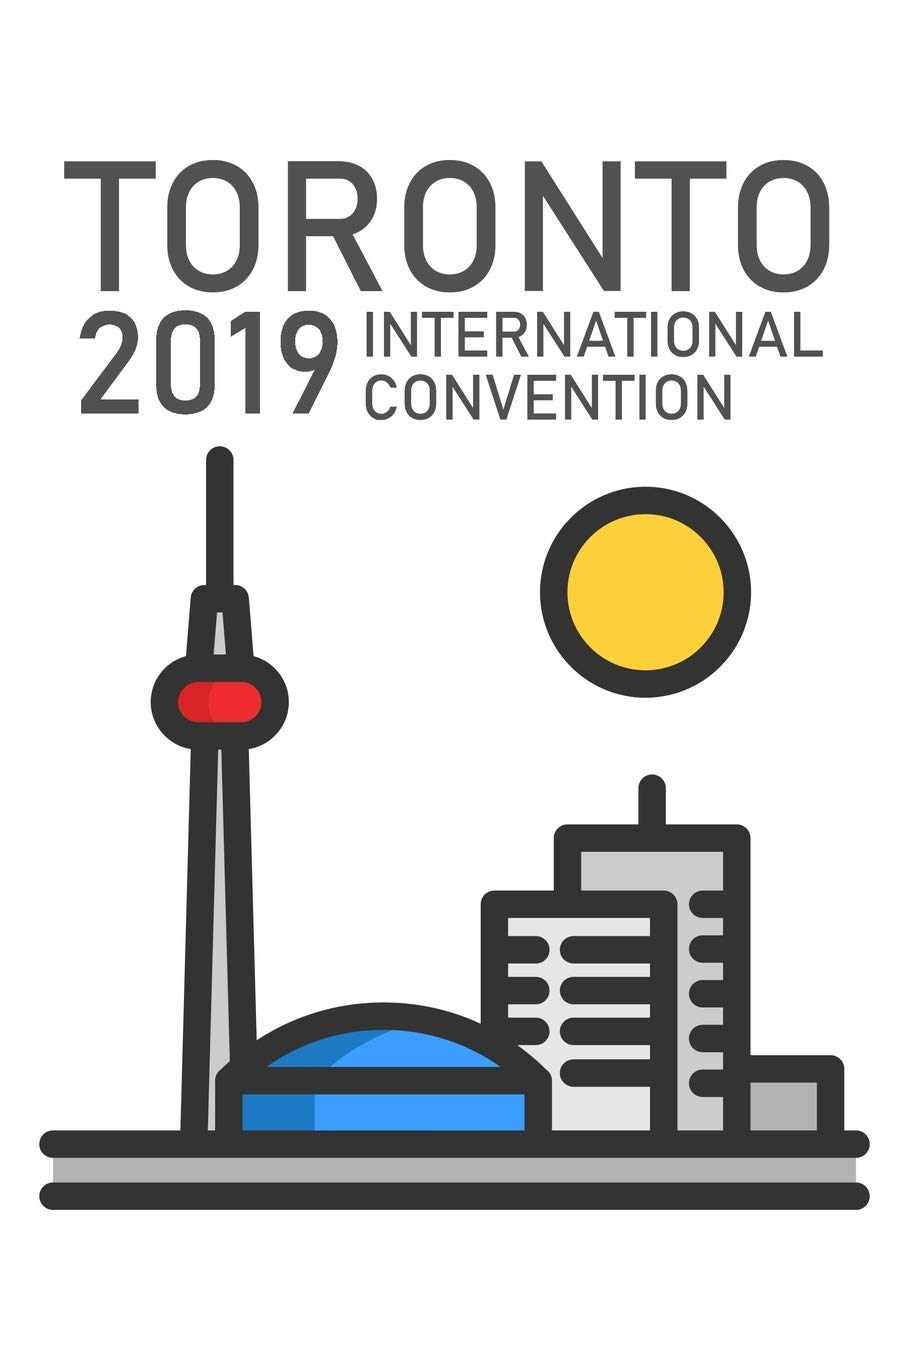 Toronto 2019 International Convention: JW Gifts